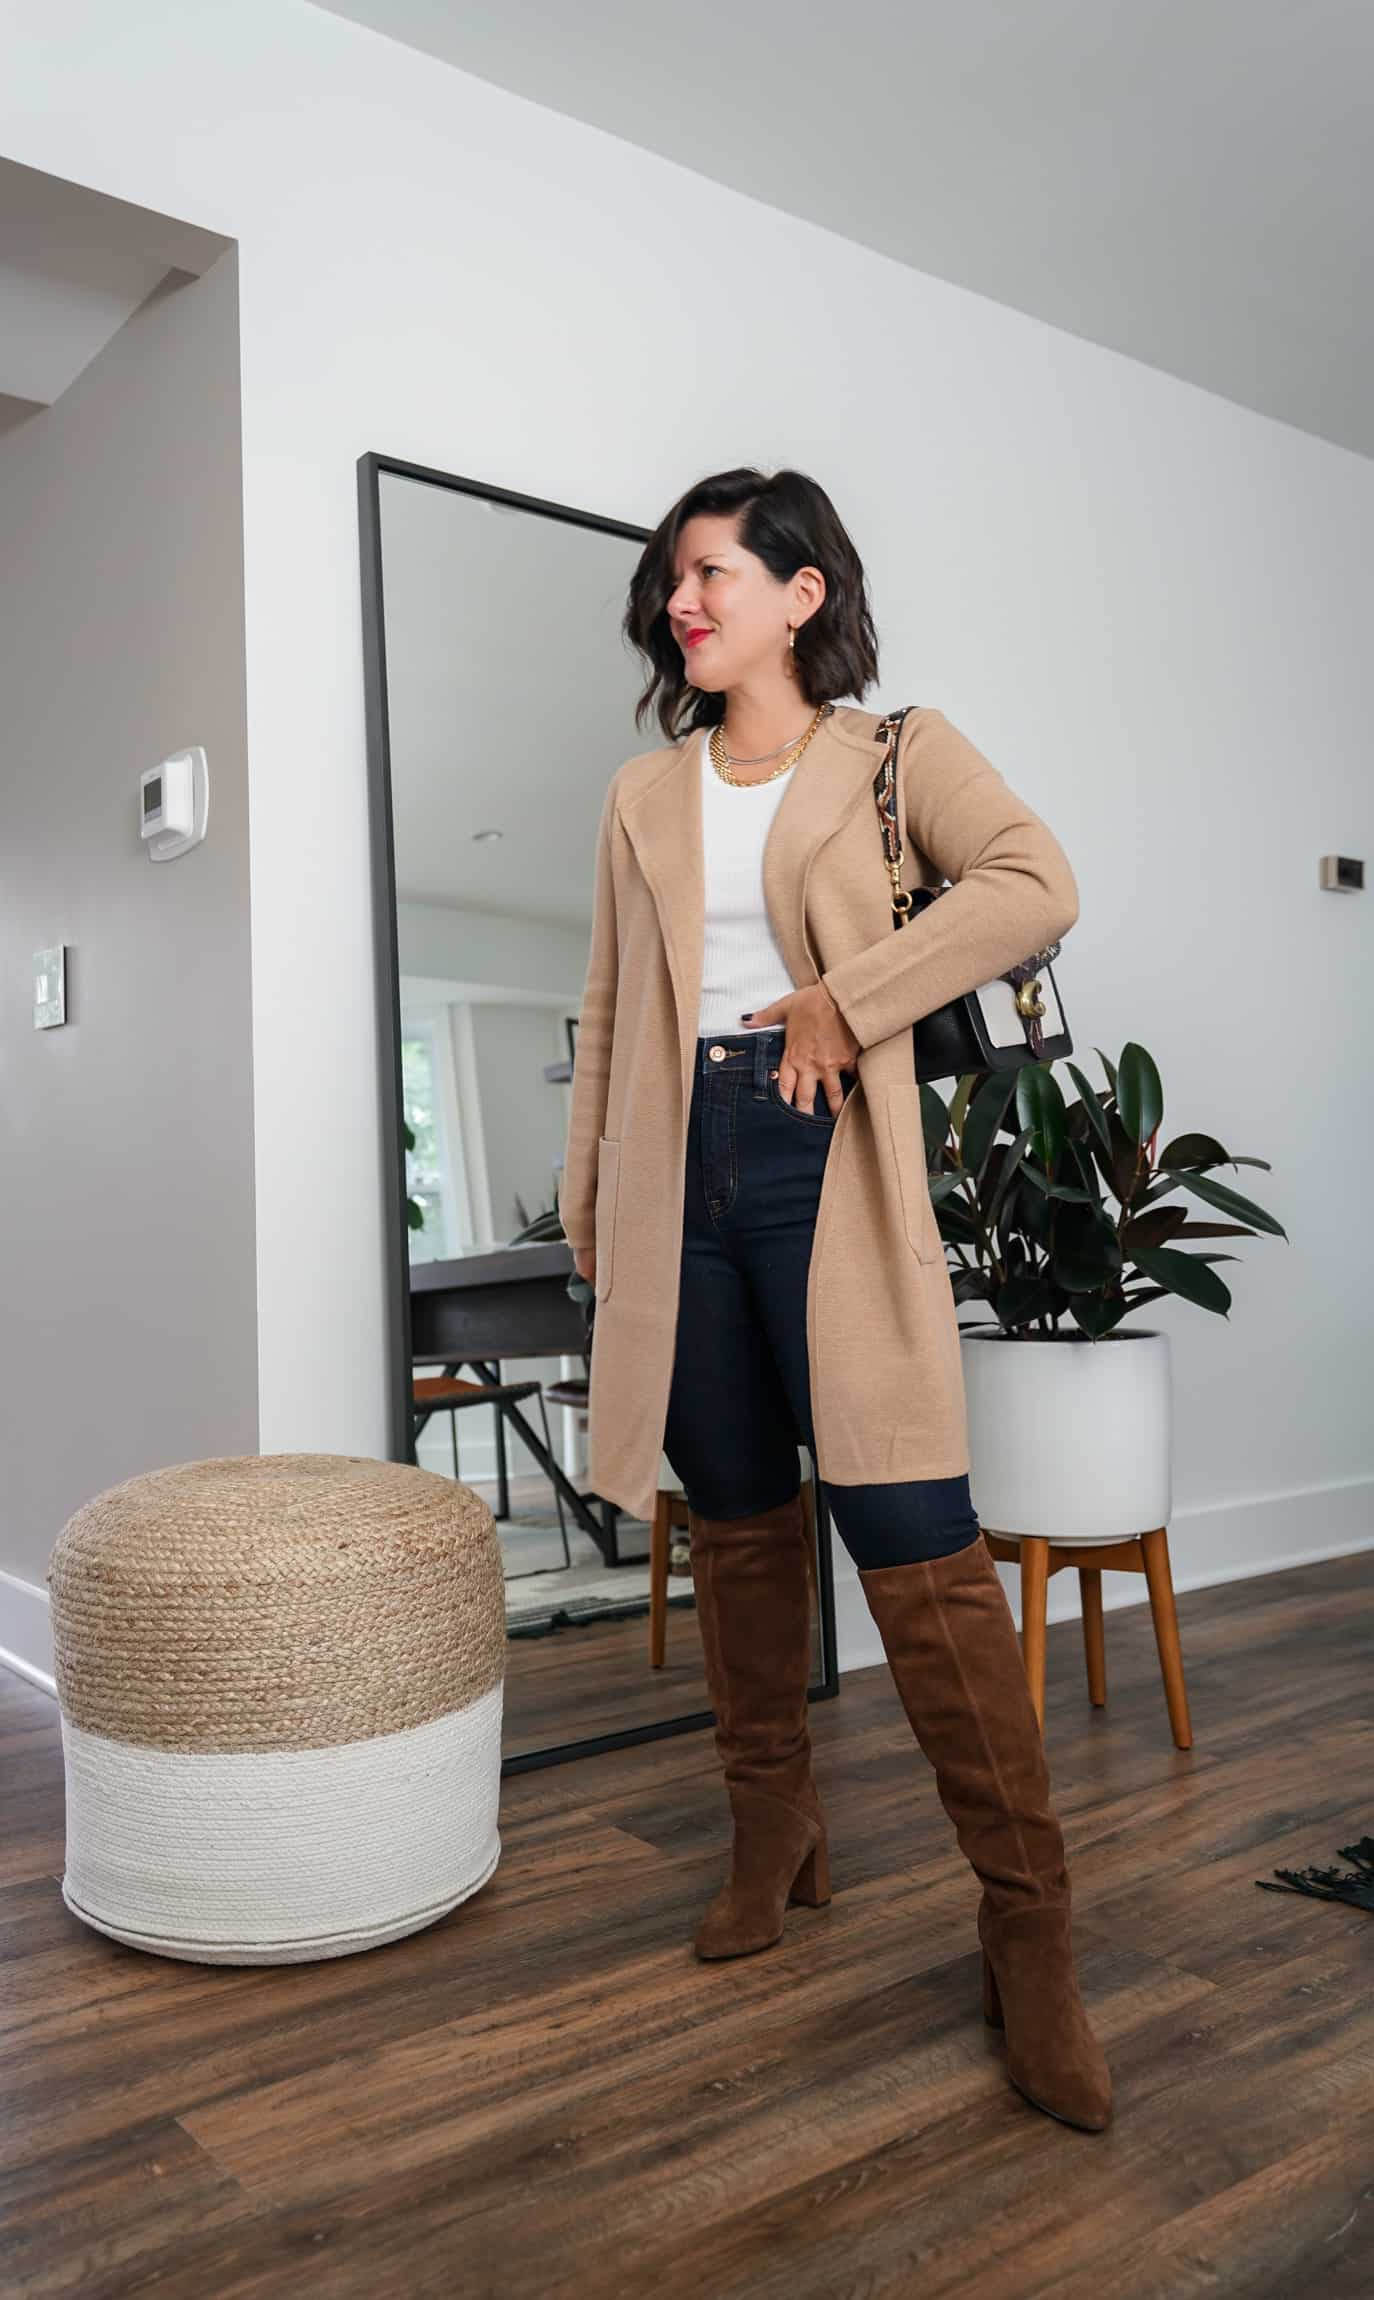 A Lily Love Affair shares how to wear a long cardigan with brown knee high boots, skinny jeans and a white tank top